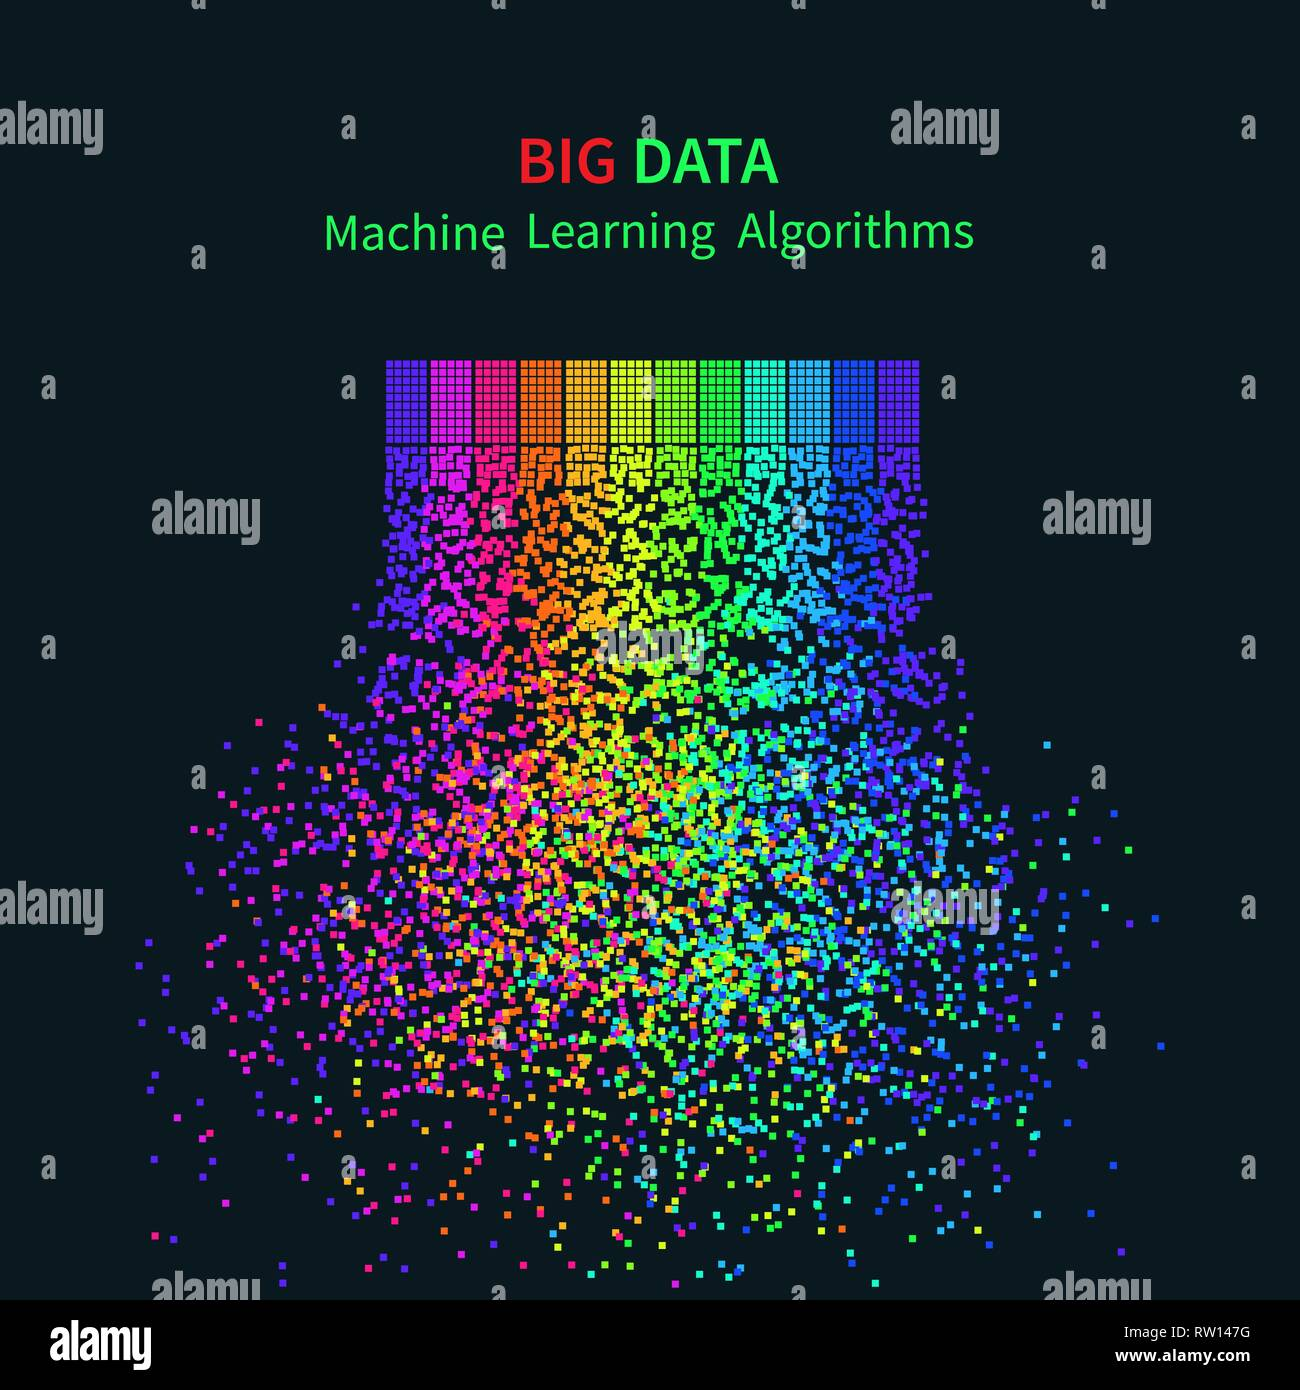 BIG DATA Machine Learning Algorithms. Analysis of Information Minimalistic Infographics Design. Science/Technology Background. Vector Illustration. - Stock Vector